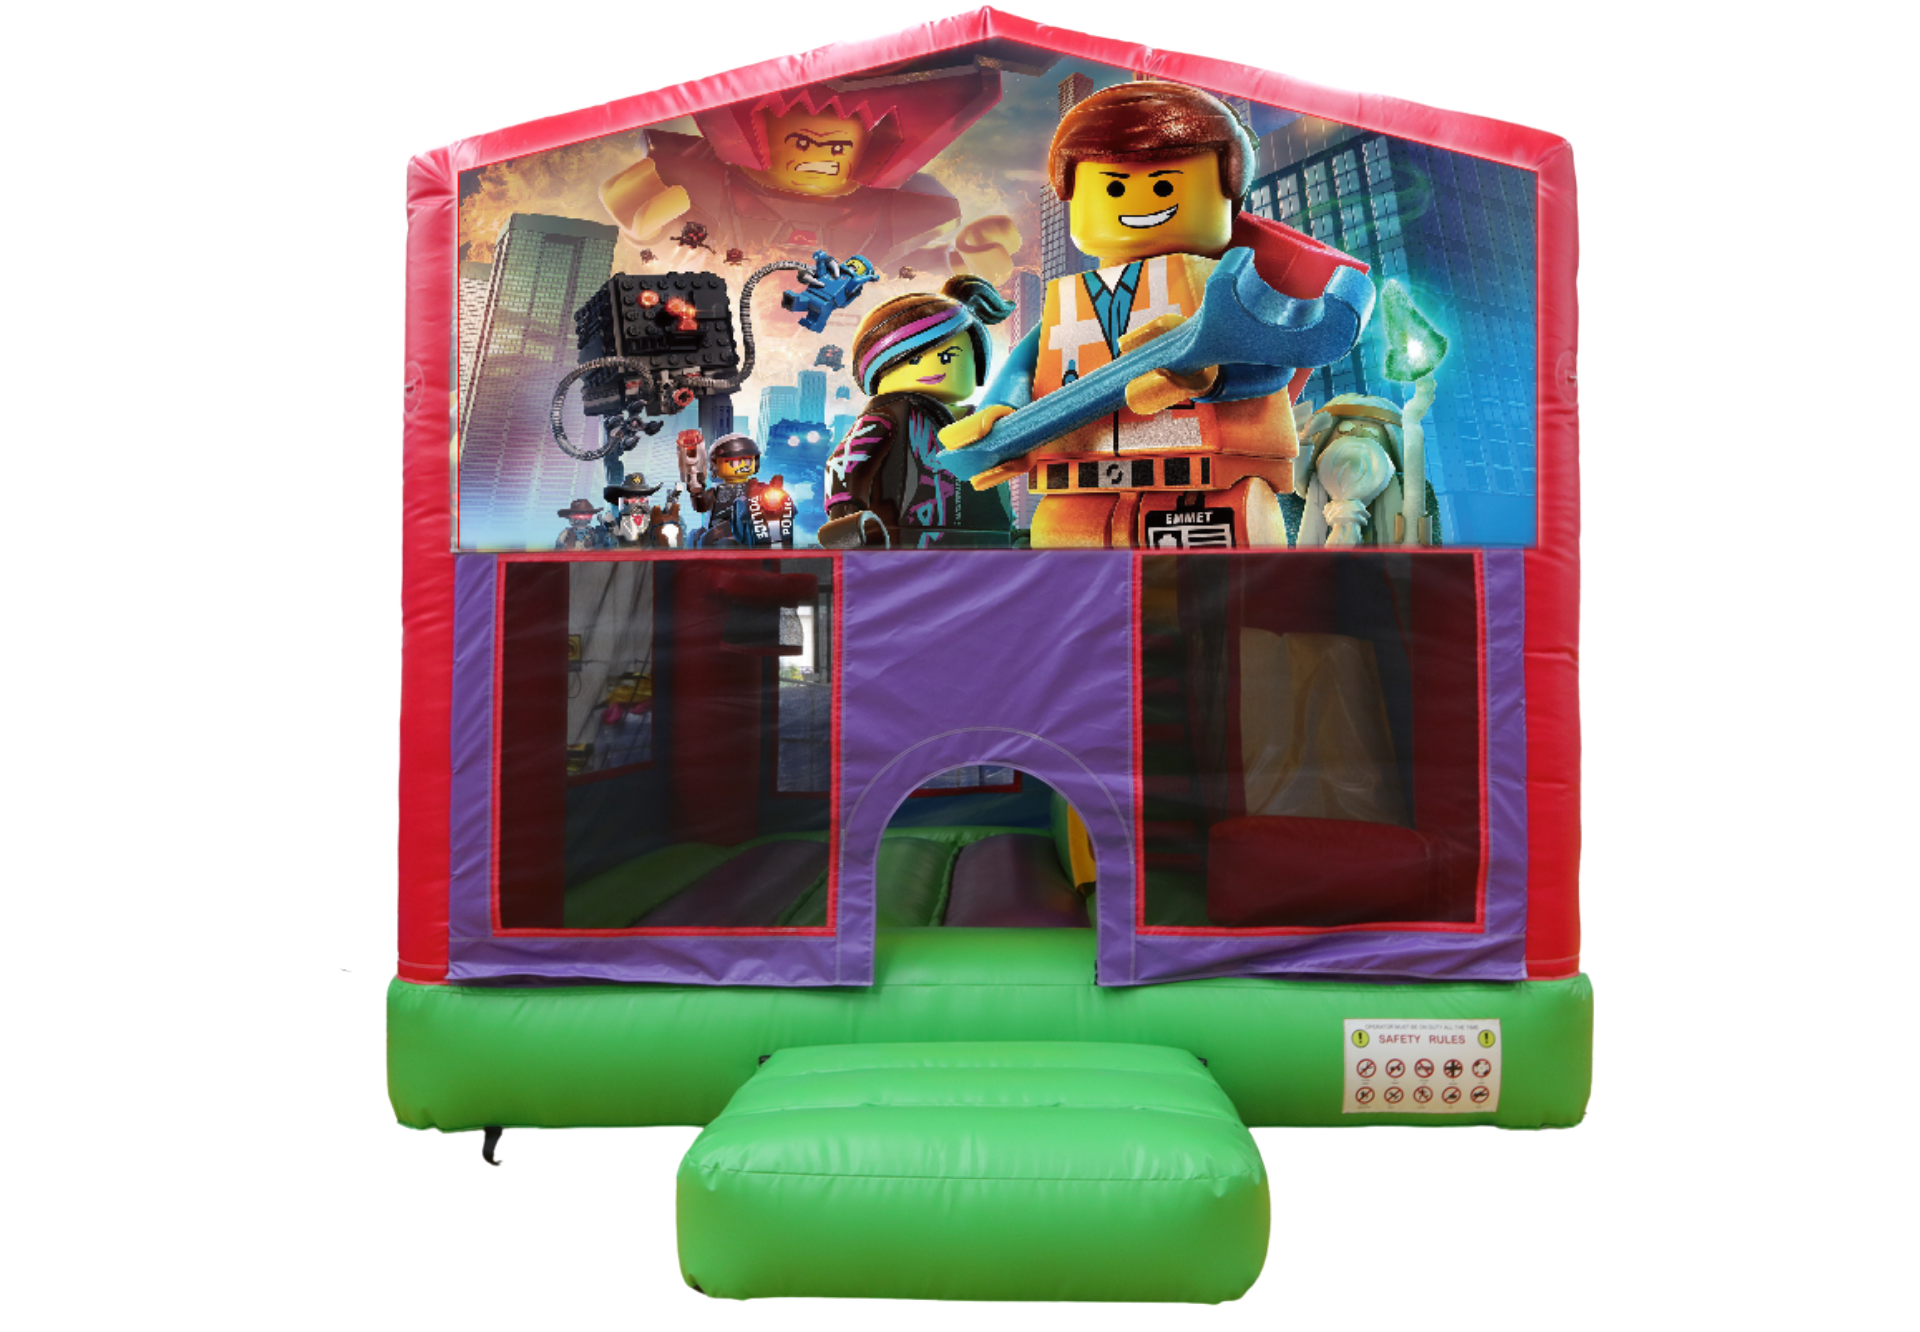 Lego Bounce House - Hire price $200